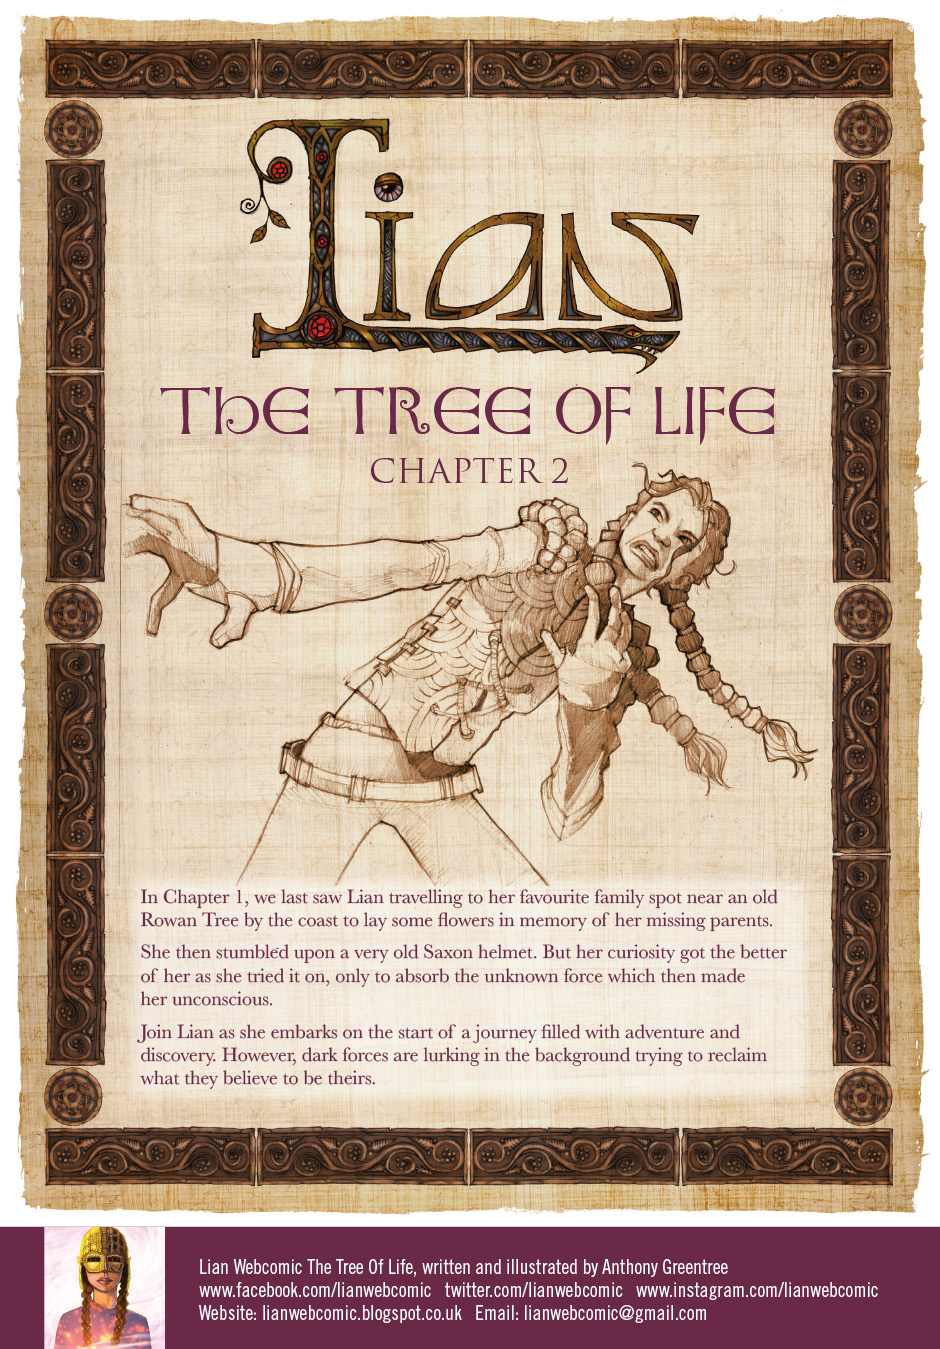 Lian Webcomic, The Tree of Life. Introduction page, chapter 2